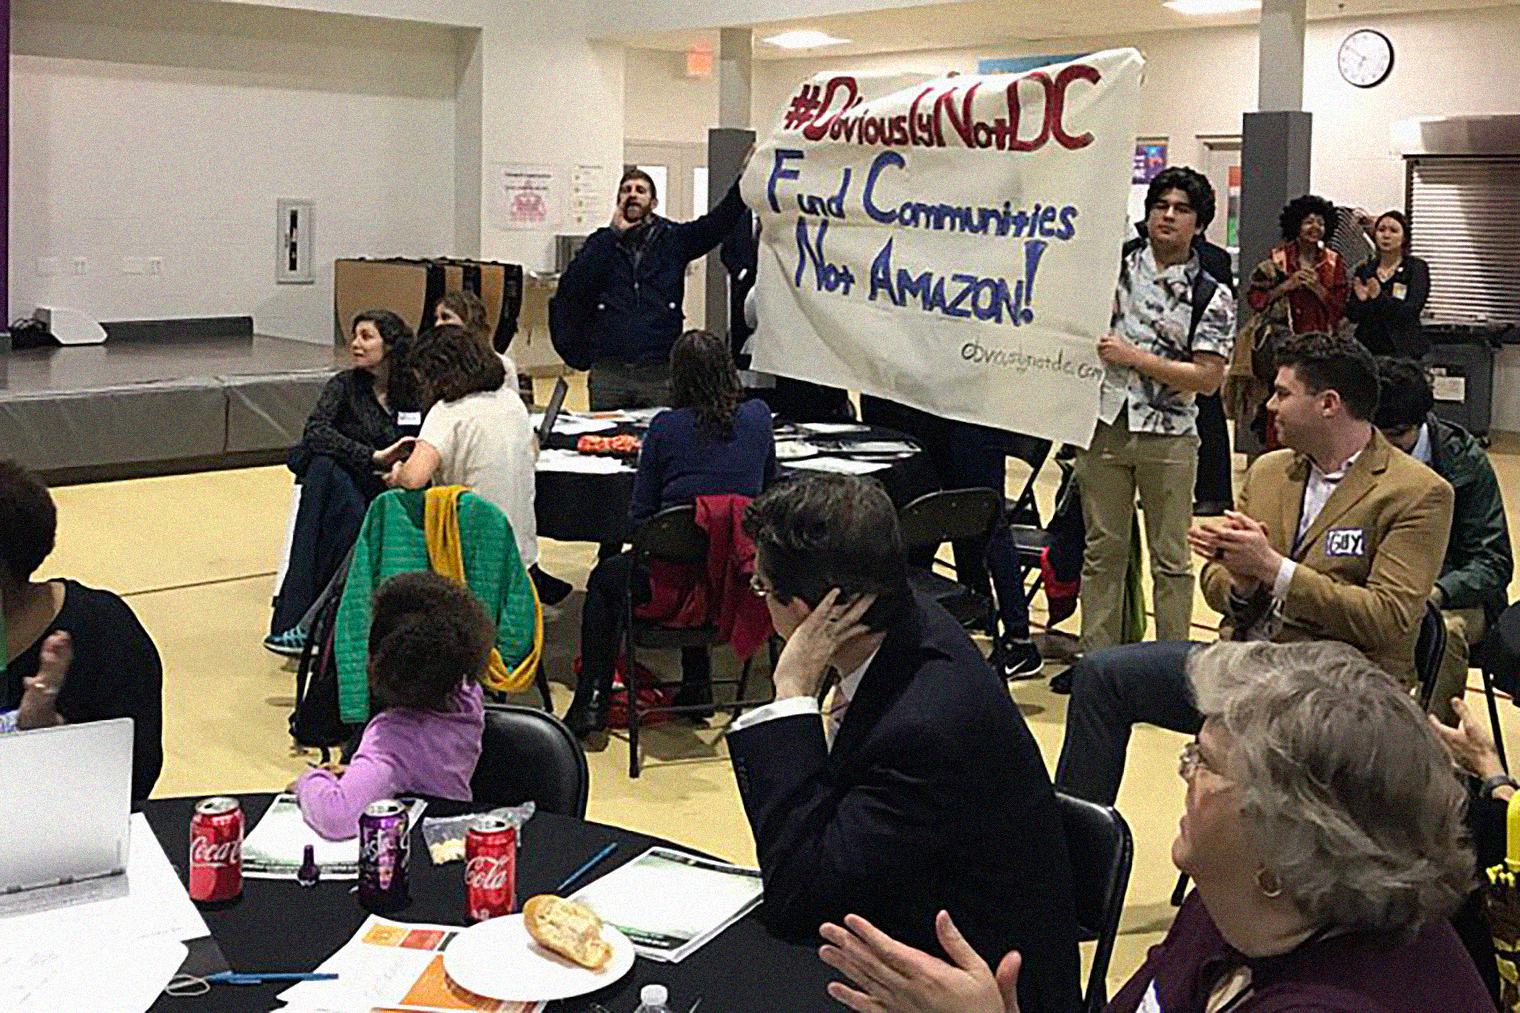 Residents are challenging Mayor Bowser to fund communities, housing, schools and transit, not give away our money to the worlds richest man and Amazon, Watkins Field Recreation Center, Washington, D.C., February 22, 2018.